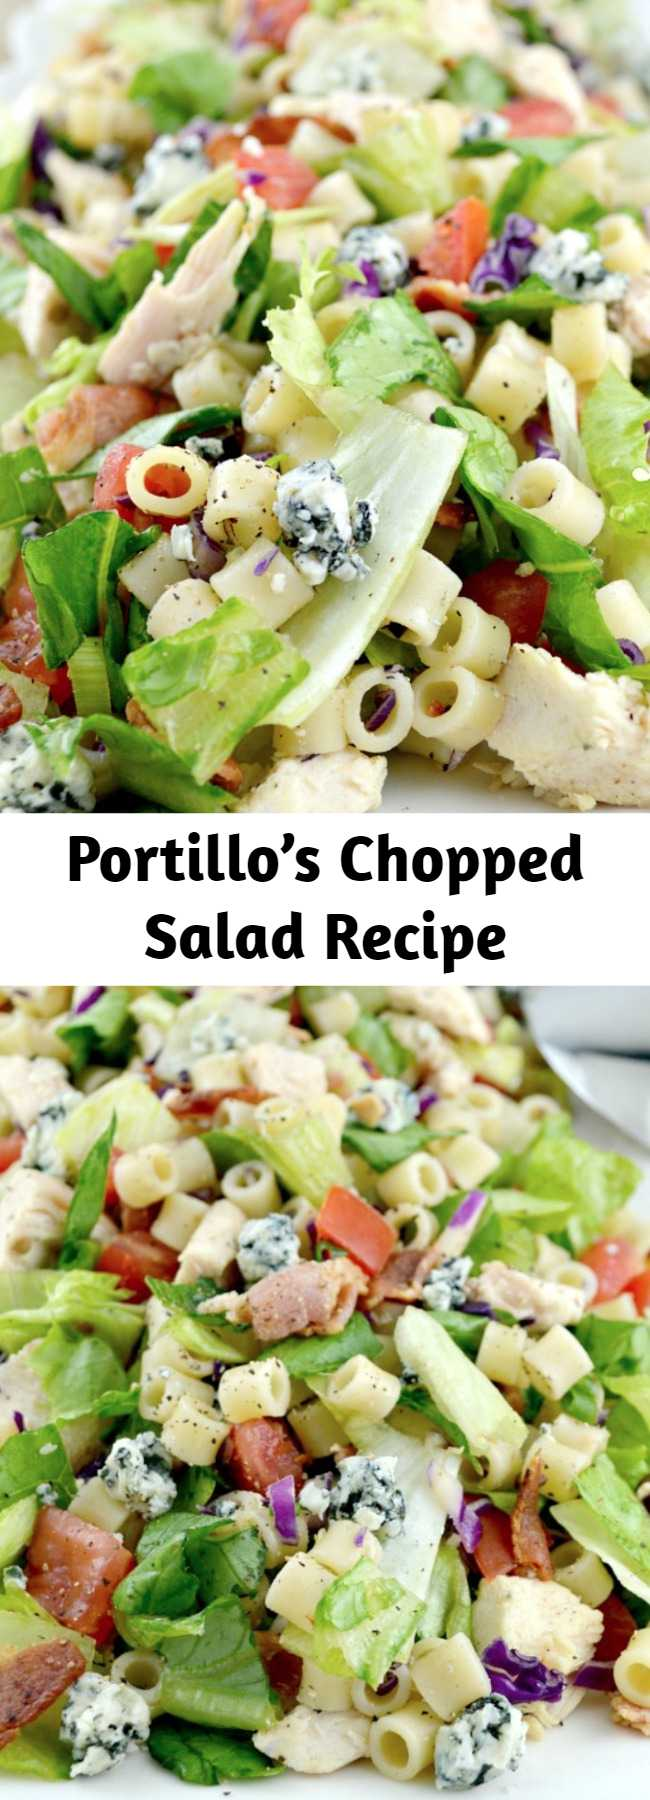 Portillo's Chopped Salad Recipe - Portillo's Chopped Salad Recipe - Portillo's Chopped Salad is a copycat recipe like the restaurant version. Loaded with great chicken, pasta, bacon, and blue cheese then dressed in a sweet Italian dressing!